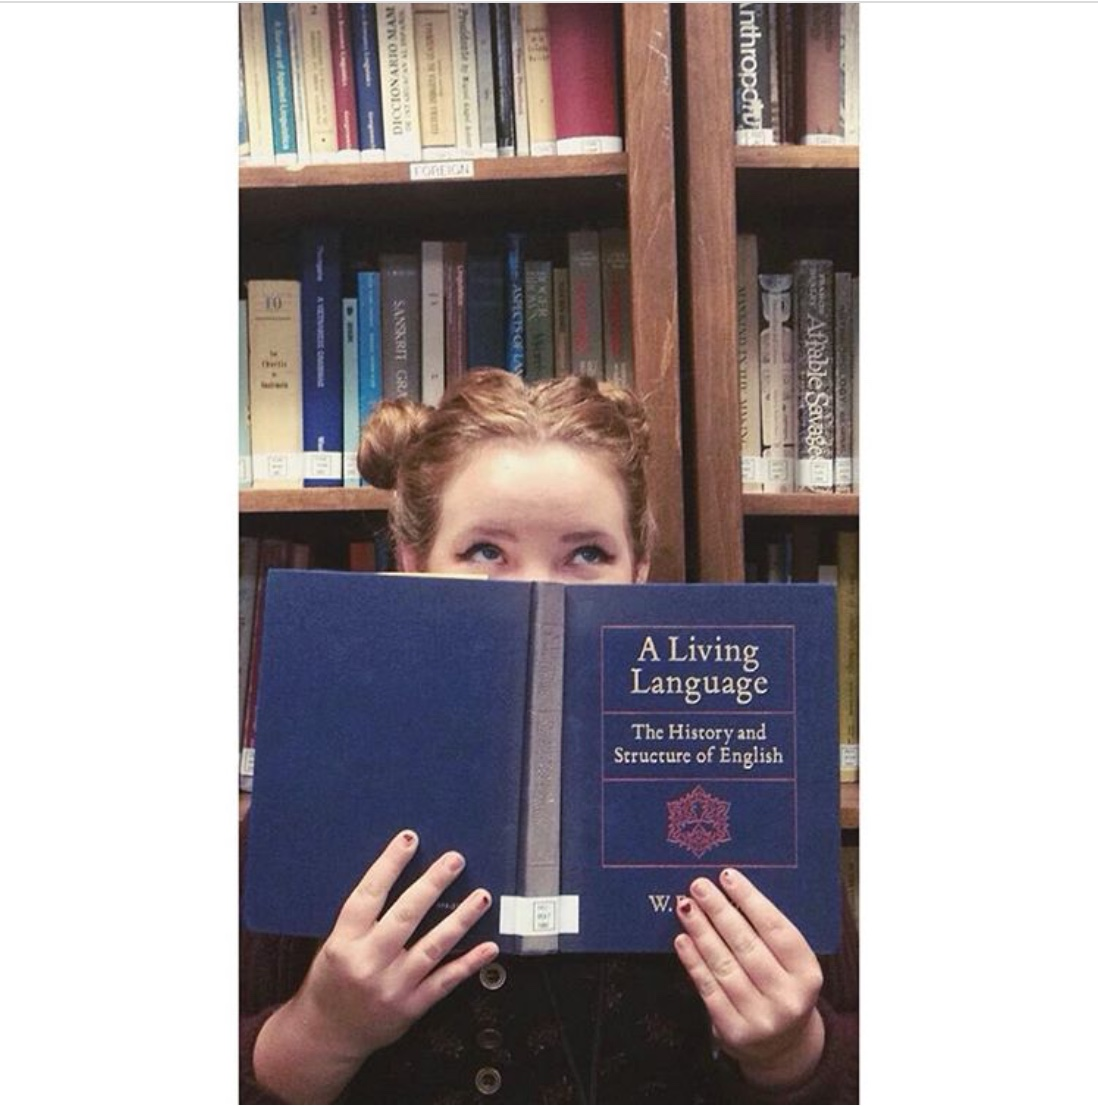 A student peeking over the top of a book